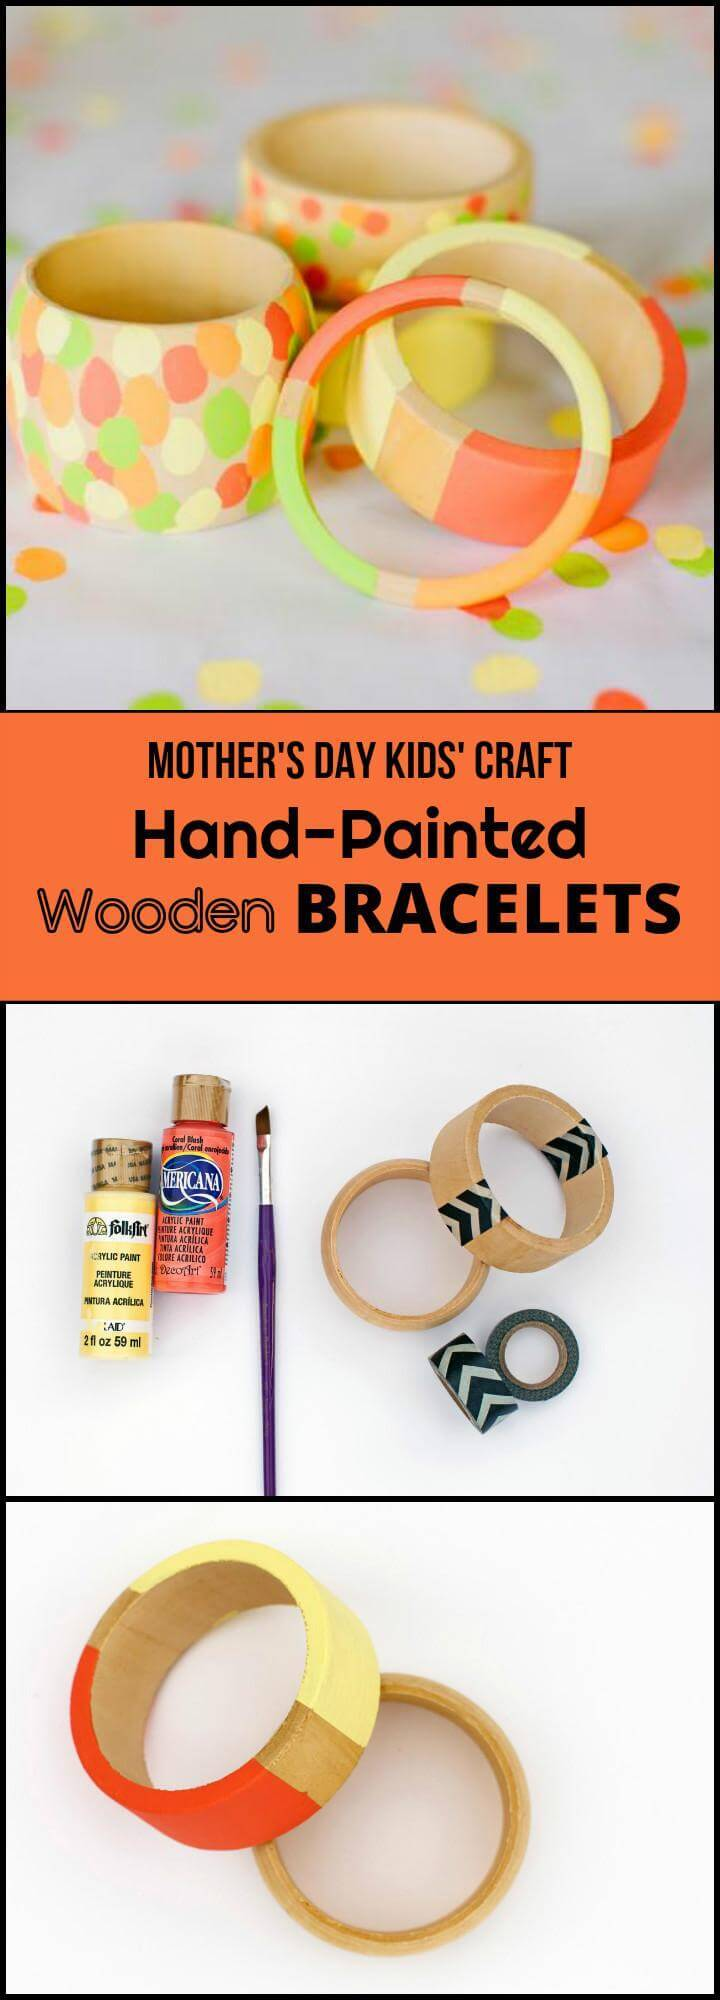 DIY hand-painted wooden bracelets for Mother's Day